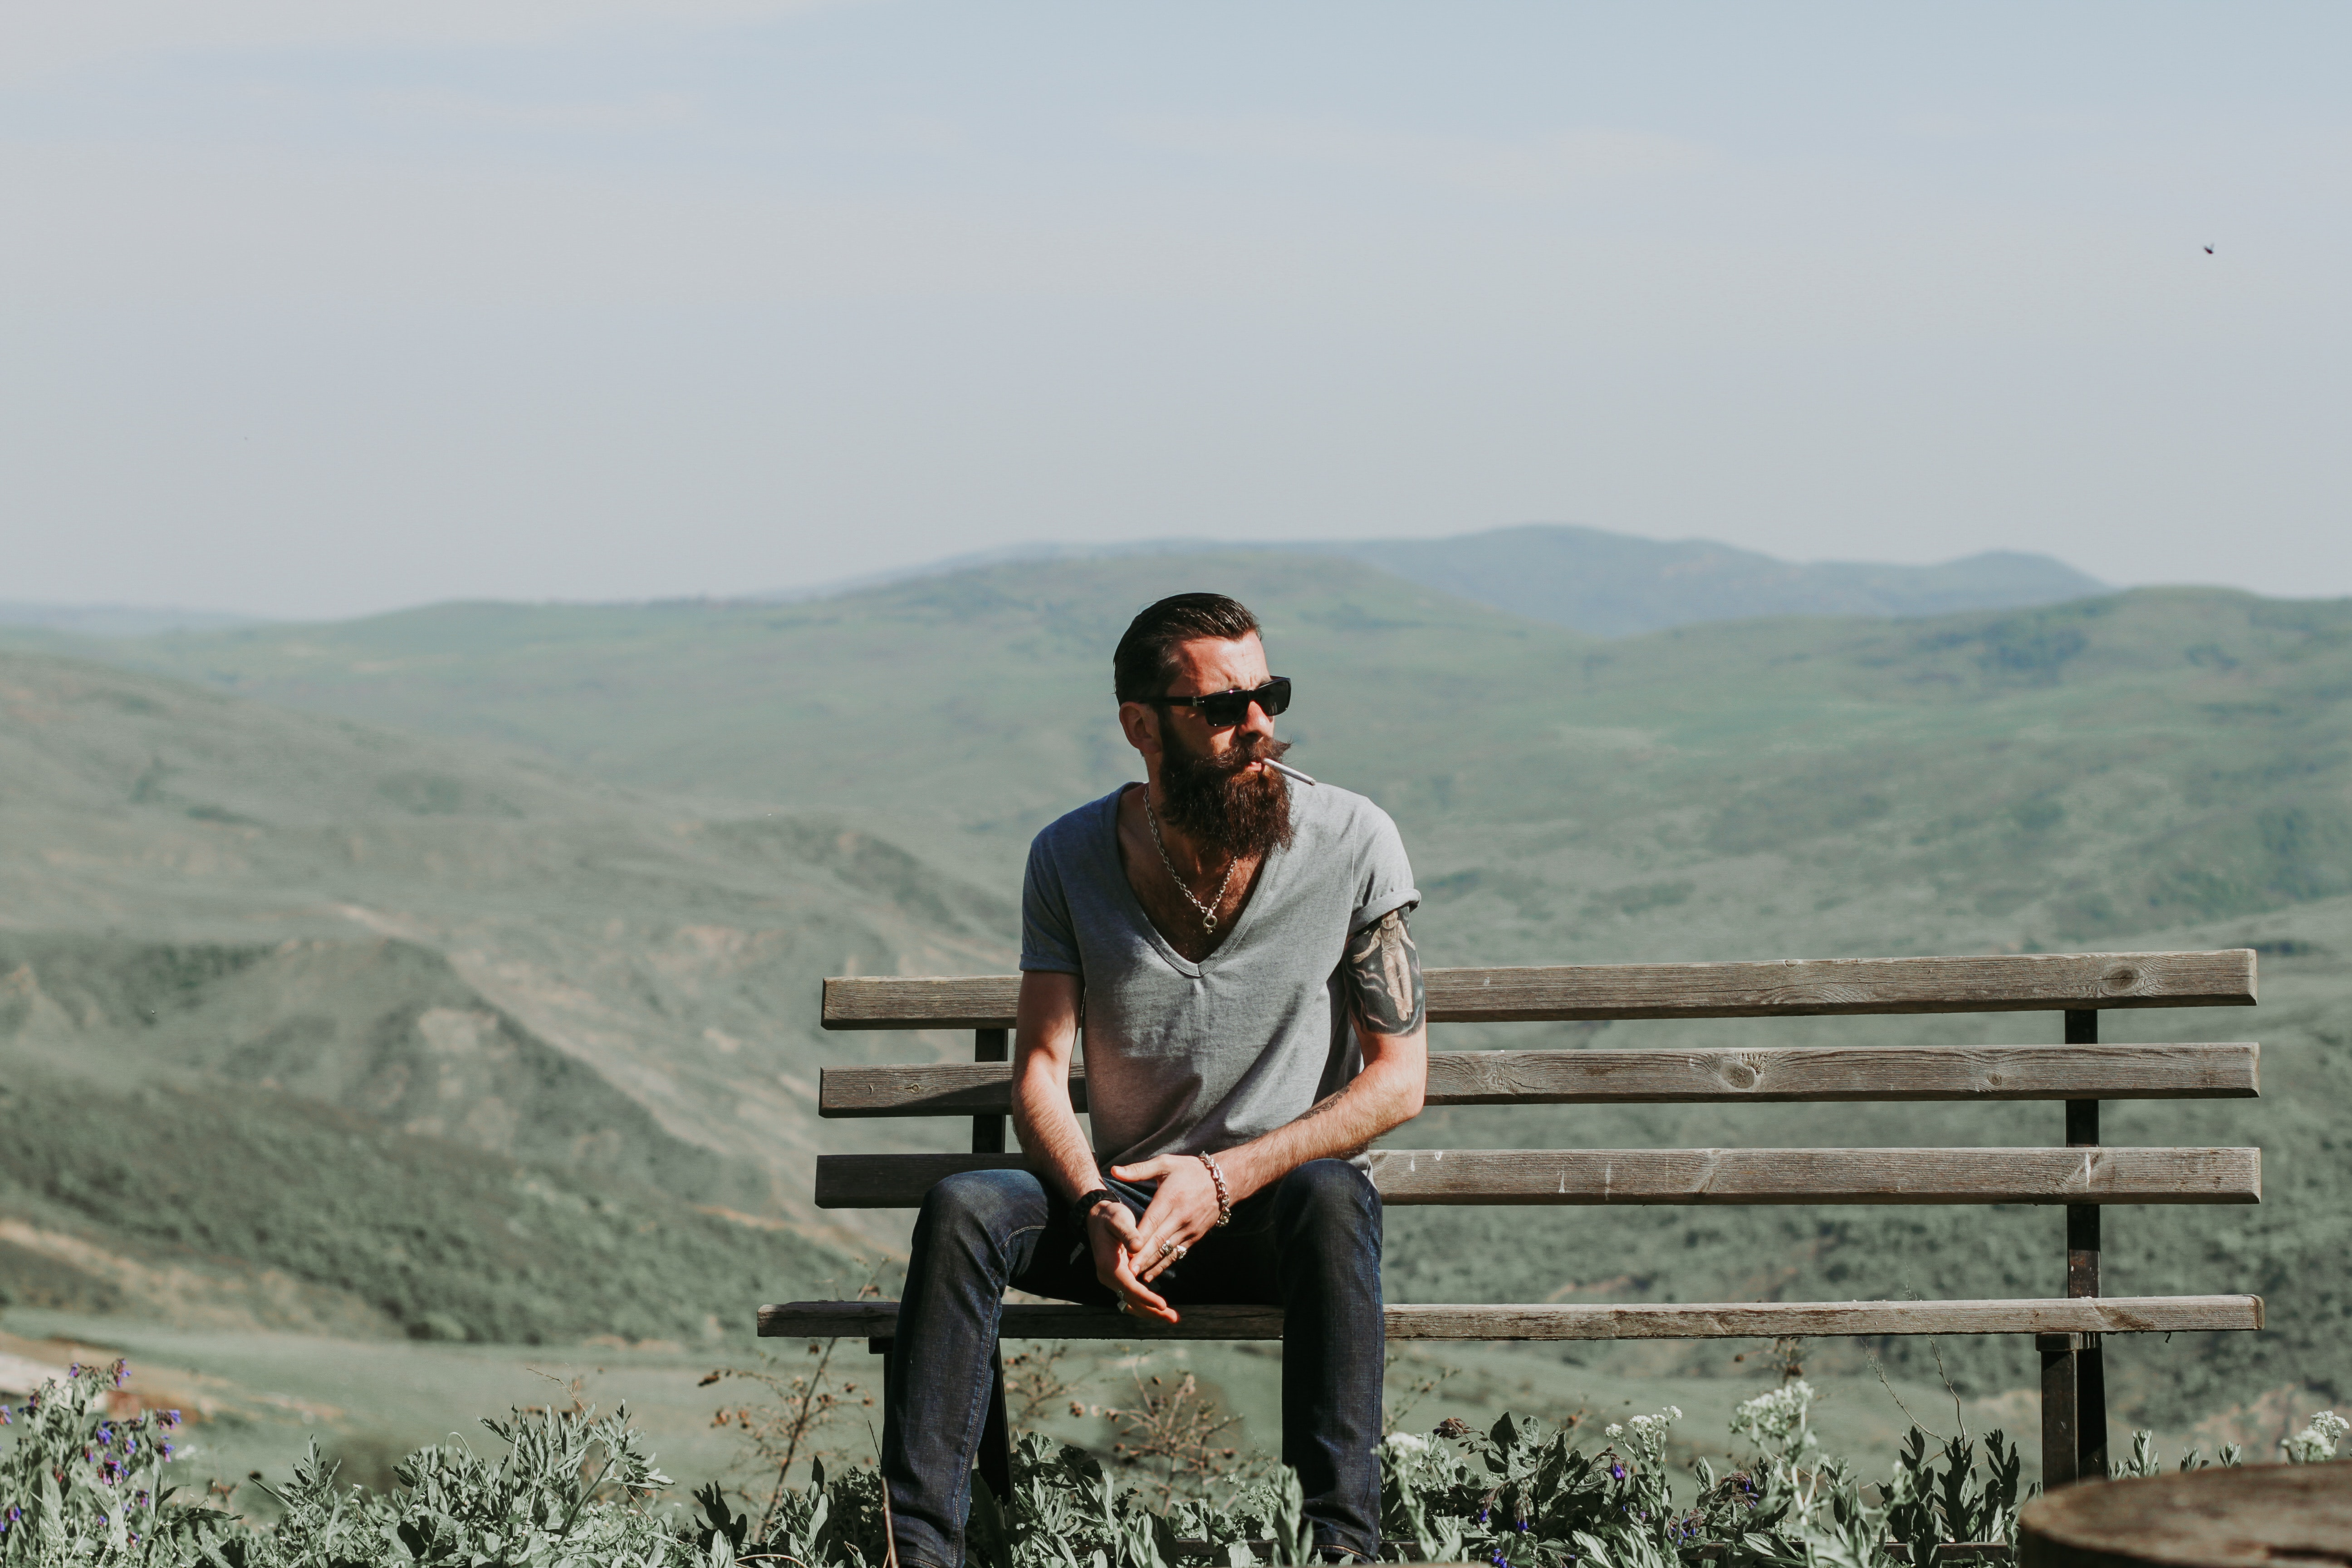 Photography of a man sitting on wooden bench